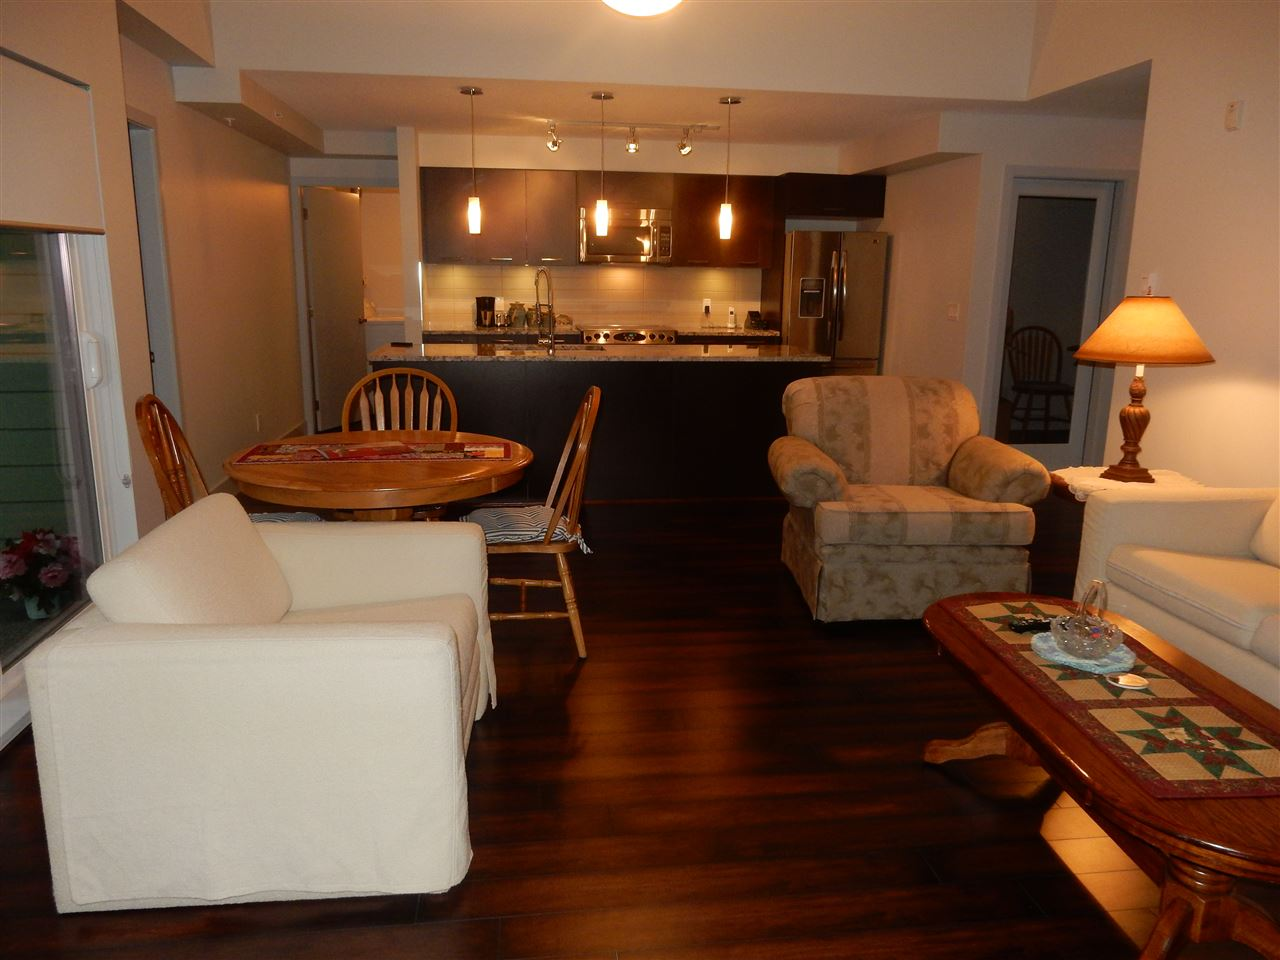 Photo 5: 312 5682 WHARF Avenue in Sechelt: Sechelt District Condo for sale (Sunshine Coast)  : MLS(r) # R2044638